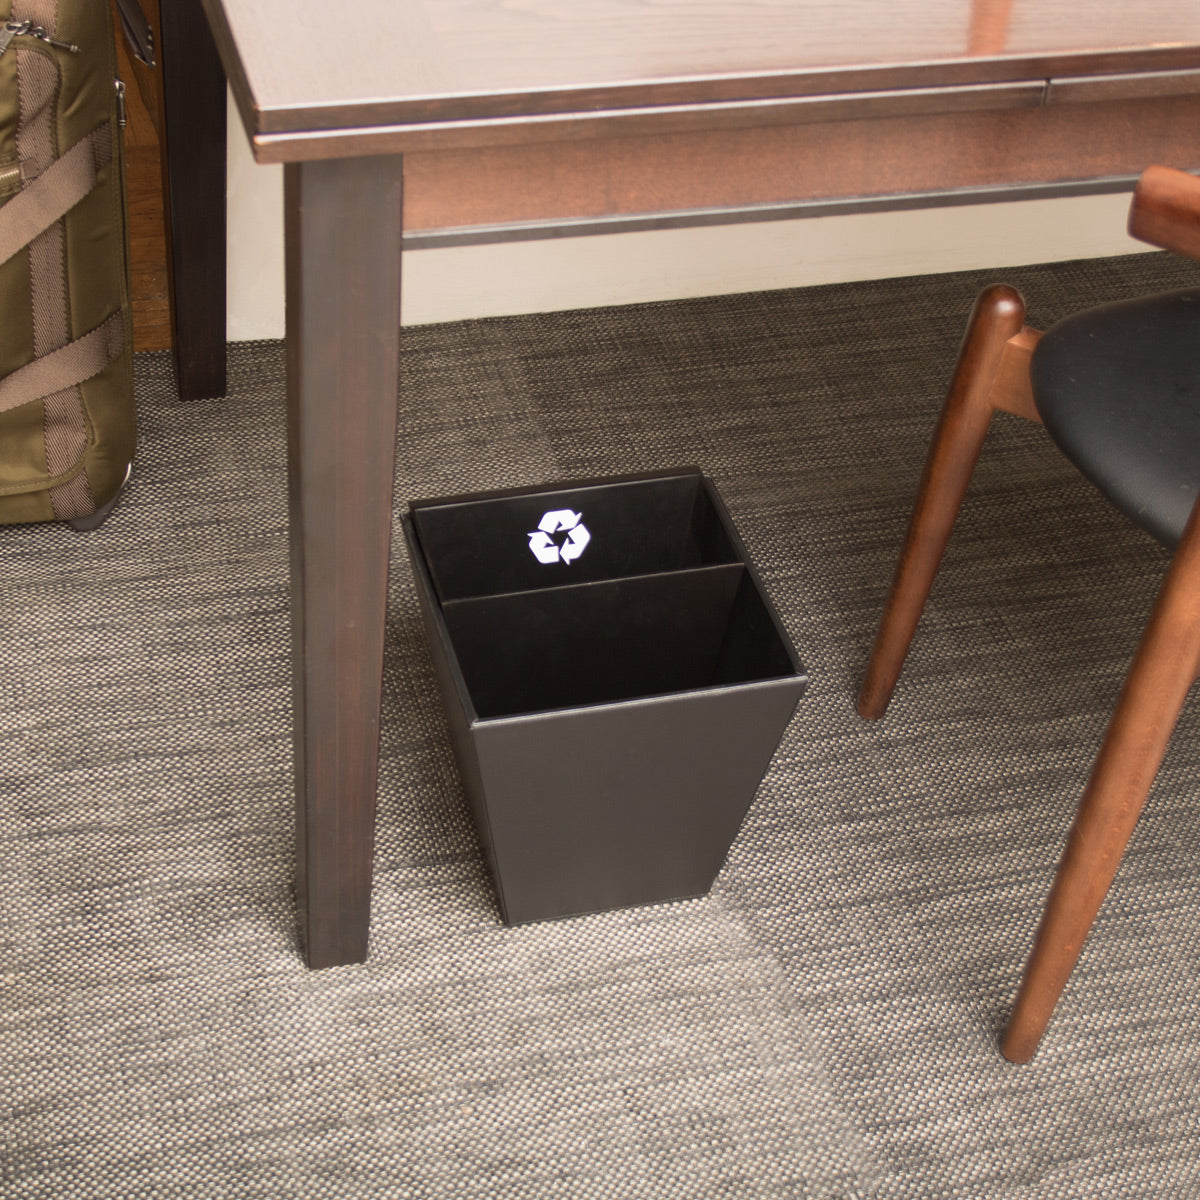 Divided waste and recycle bin in faux leatherette black and MDF, with recycle symbol